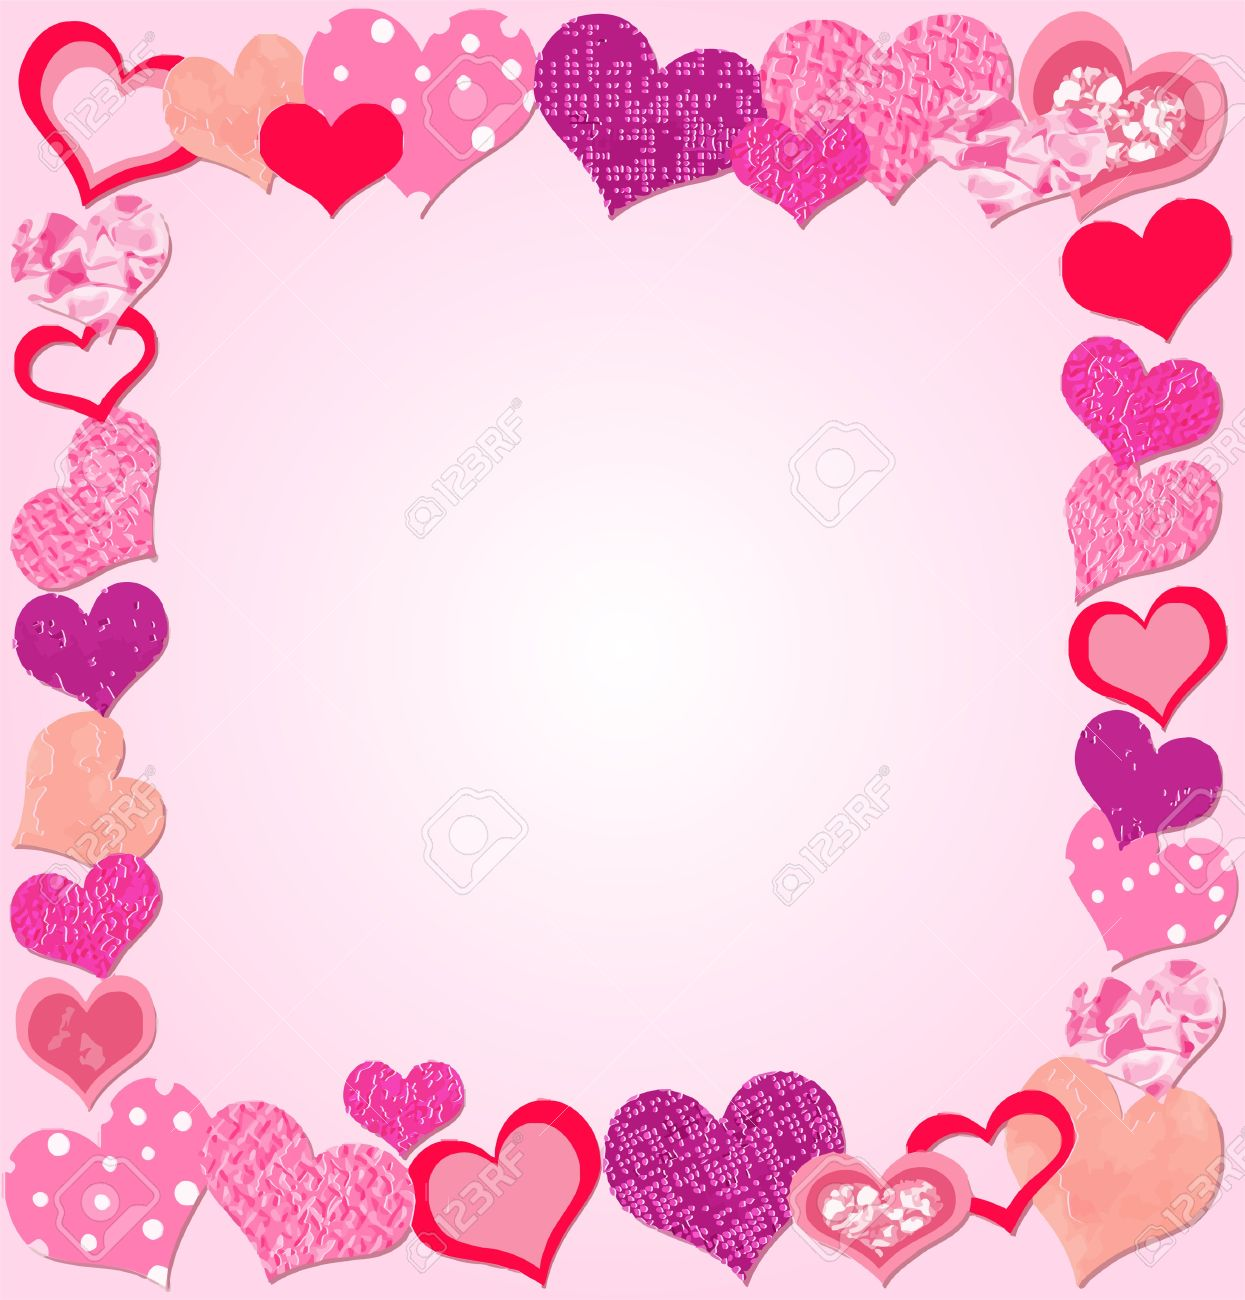 Valentine Day Pink Frame With Hearts Royalty Free Cliparts, Vectors ...